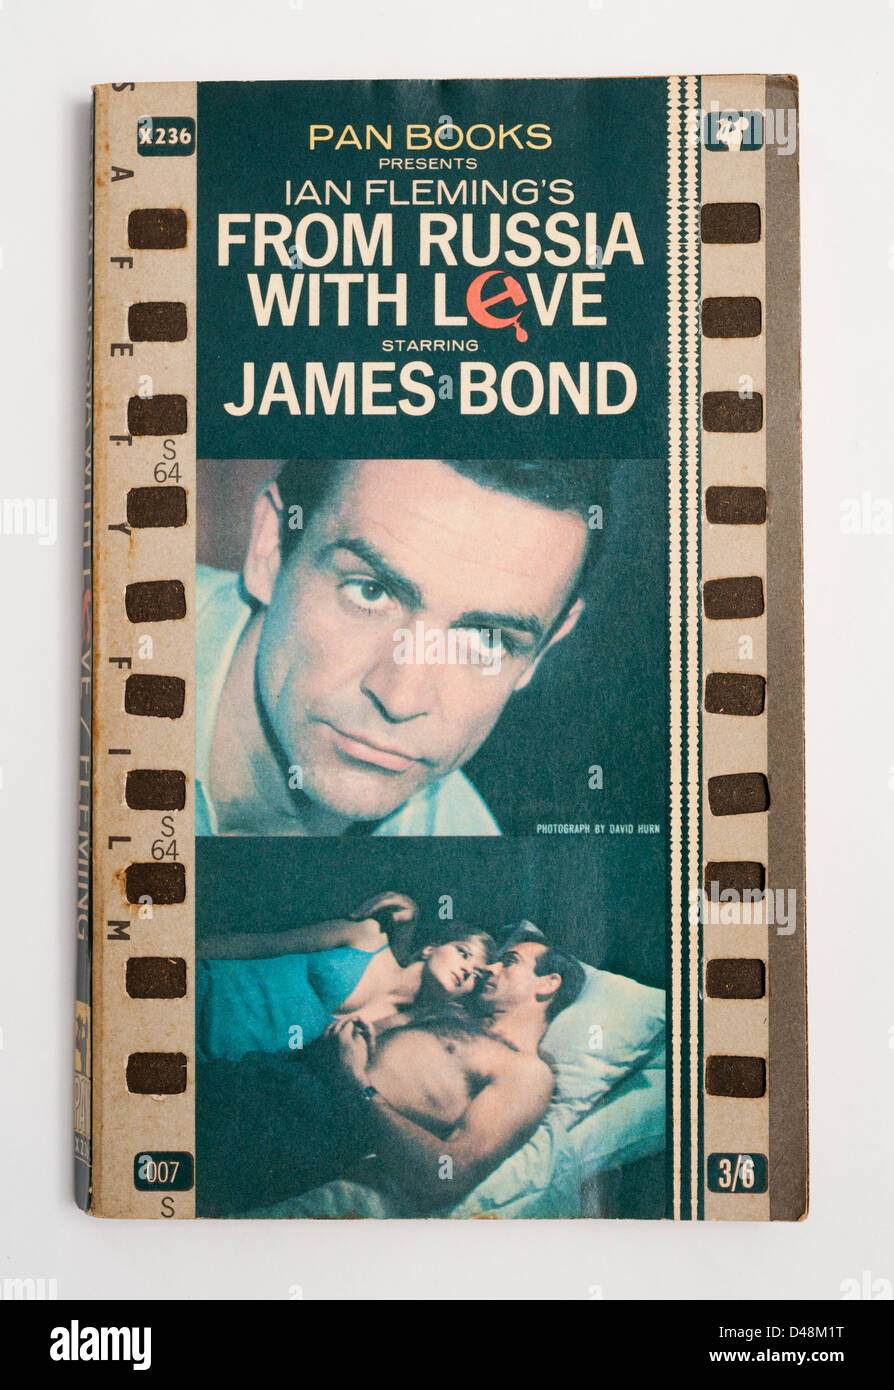 'From Russia With Love' James Bond novel written by Ian Fleming - Stock Image